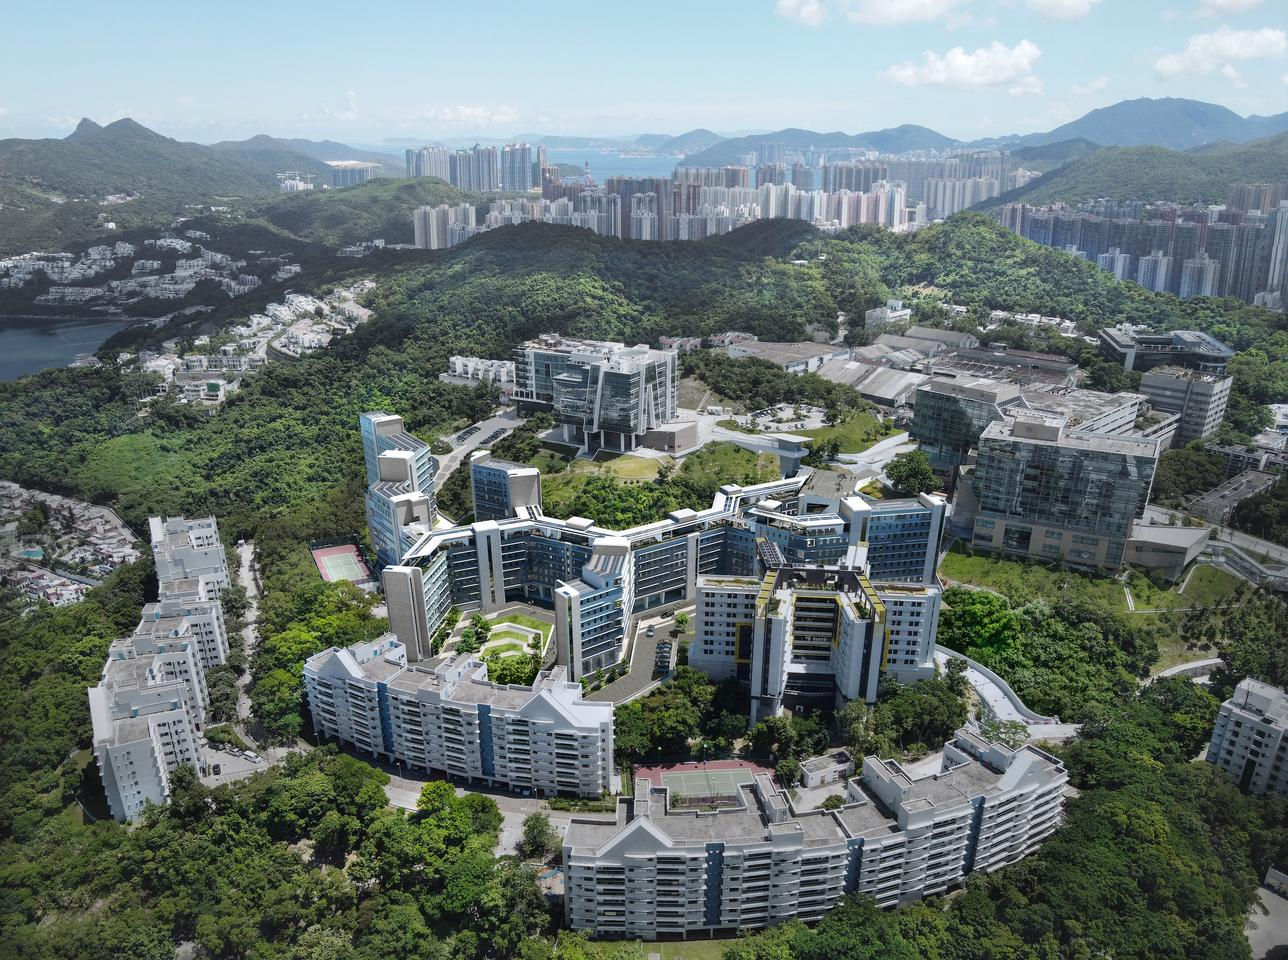 The HKUST Student Residence Development is already under construction and is due to be completed in 2023